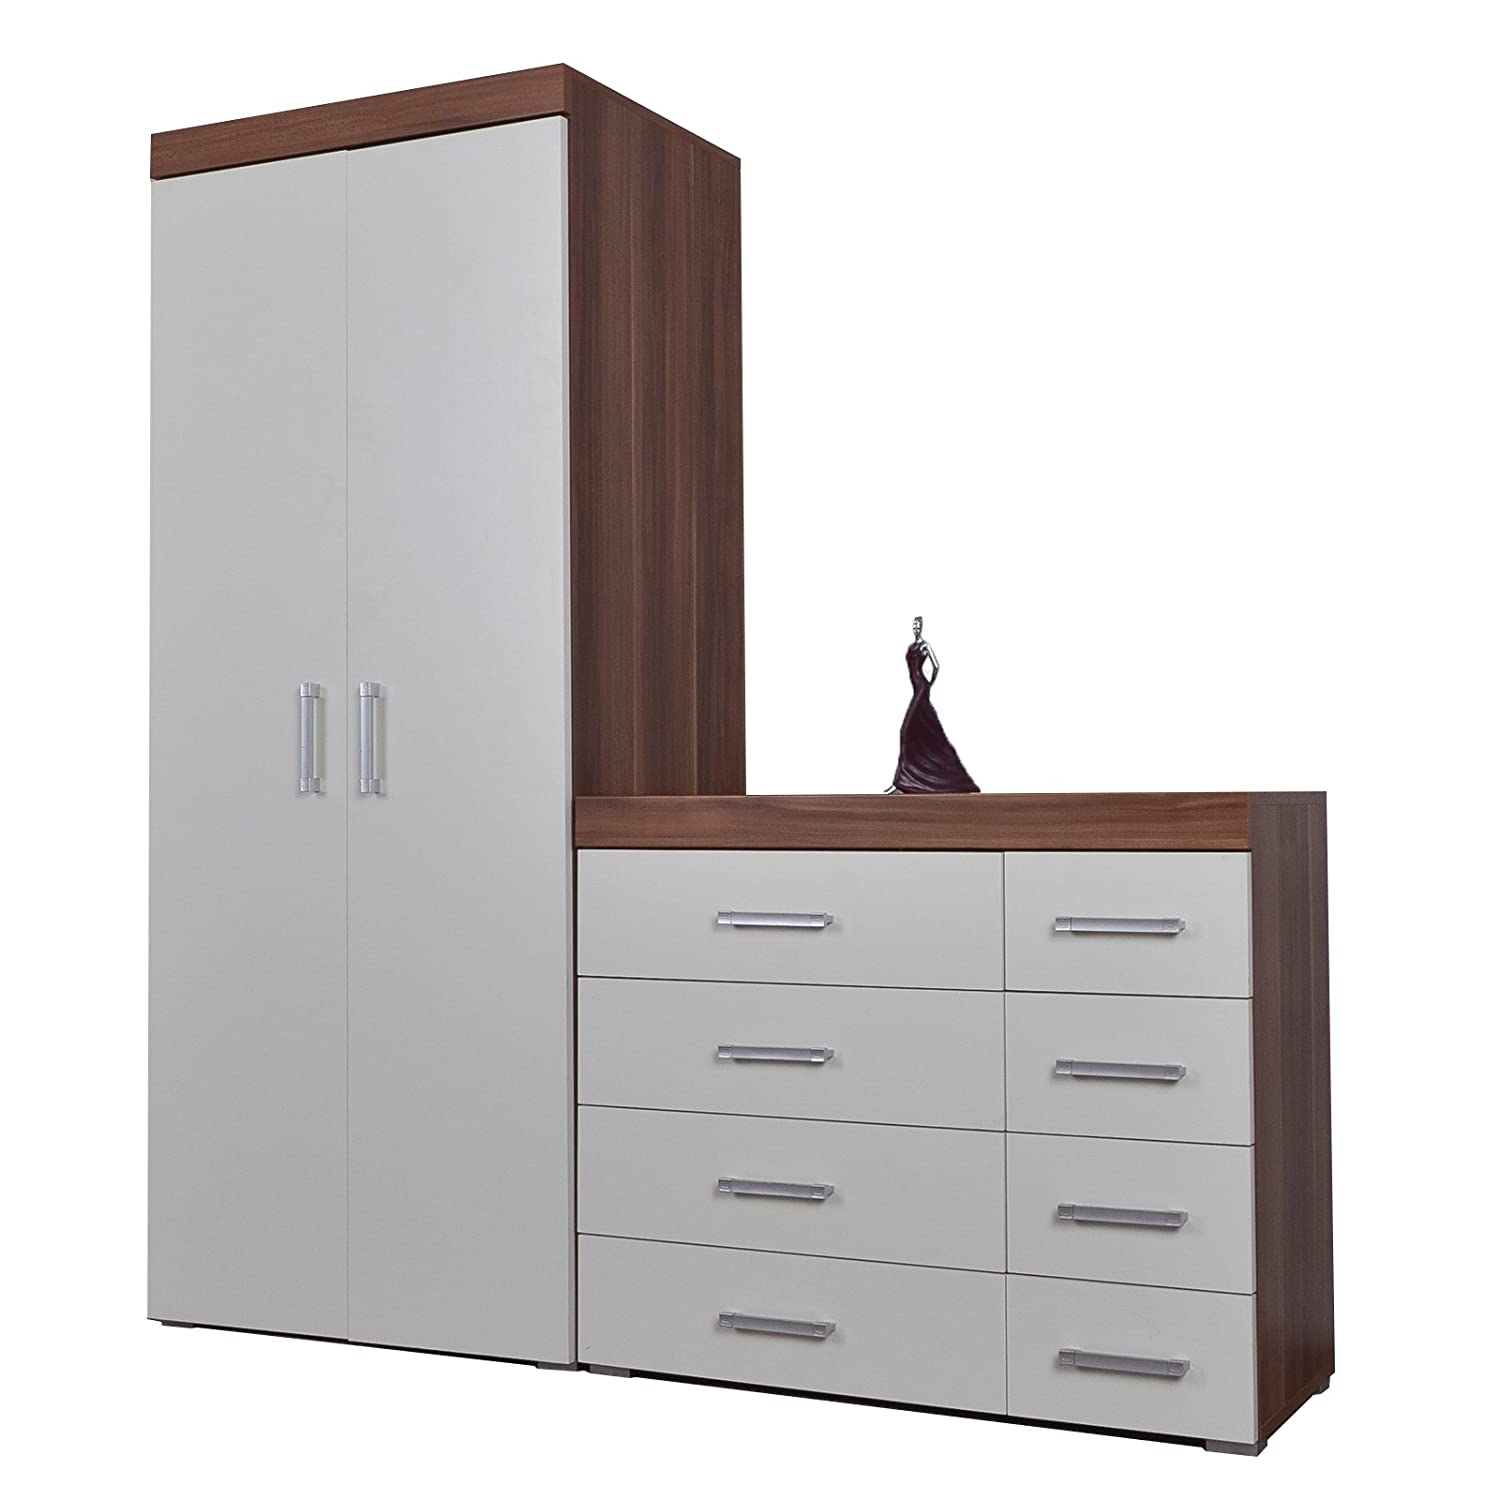 DP 4+4 Drawer Chest Drawers & 2 Door Wardrobe White & Walnut Effect Bedroom Set